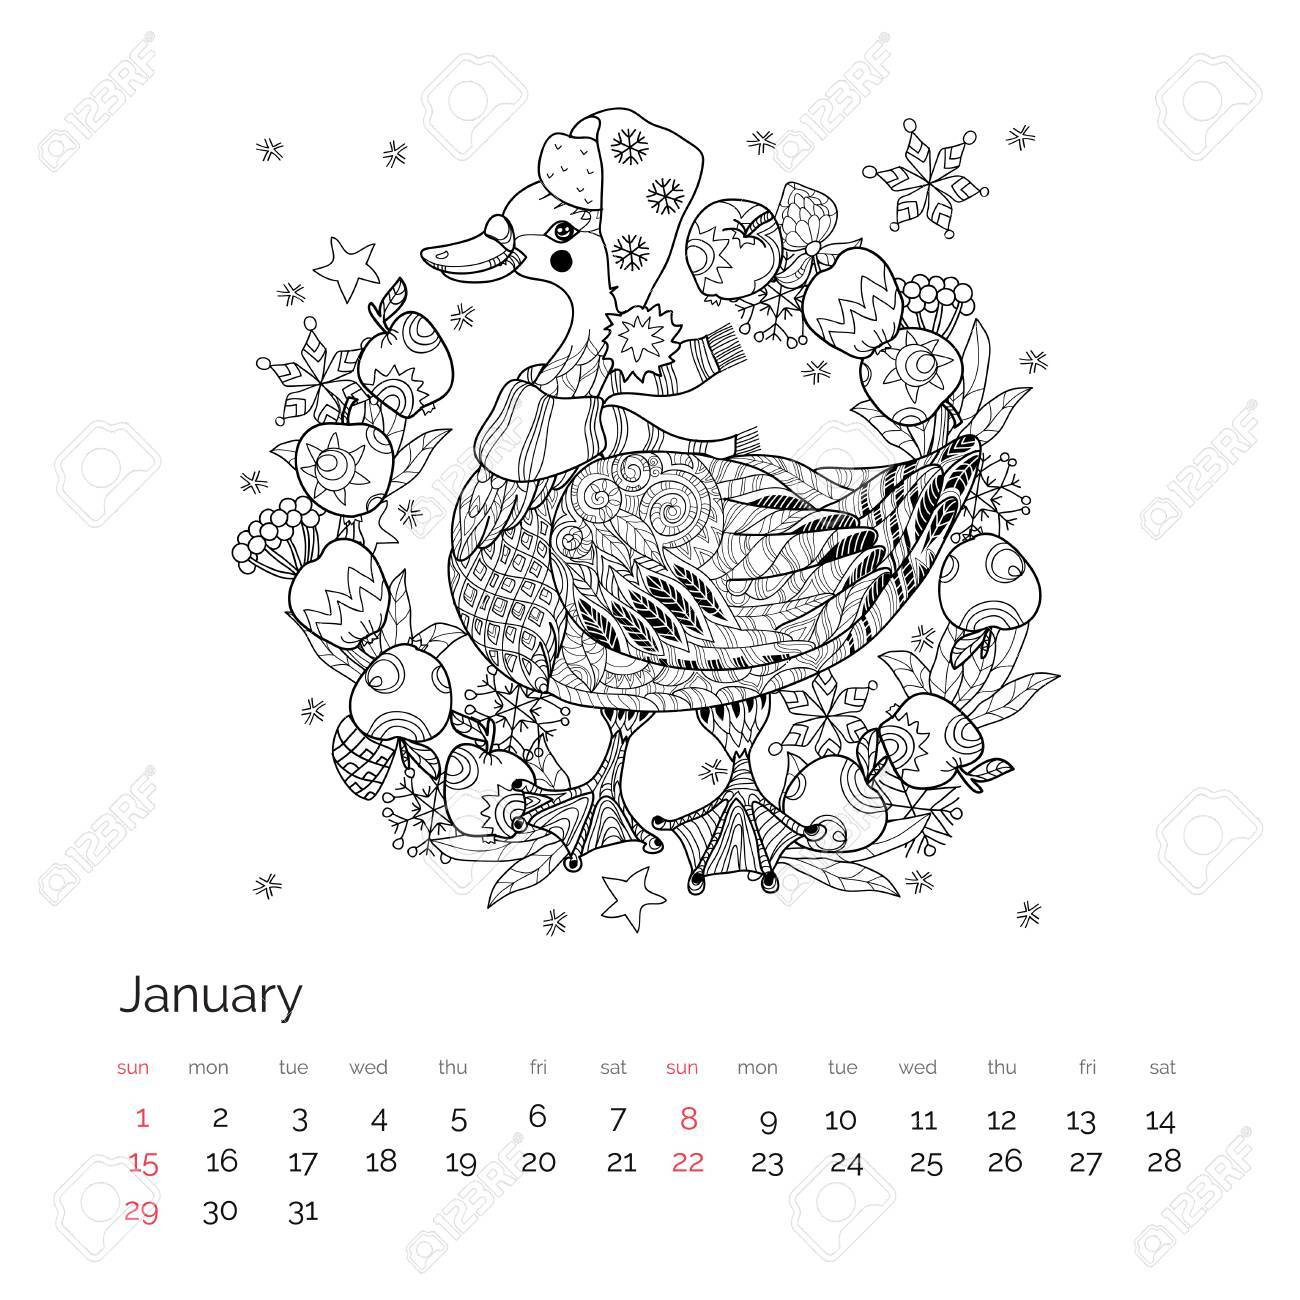 Relax With Art Calendar : Christmas goose in funny hat doodle with frame apples bird zen